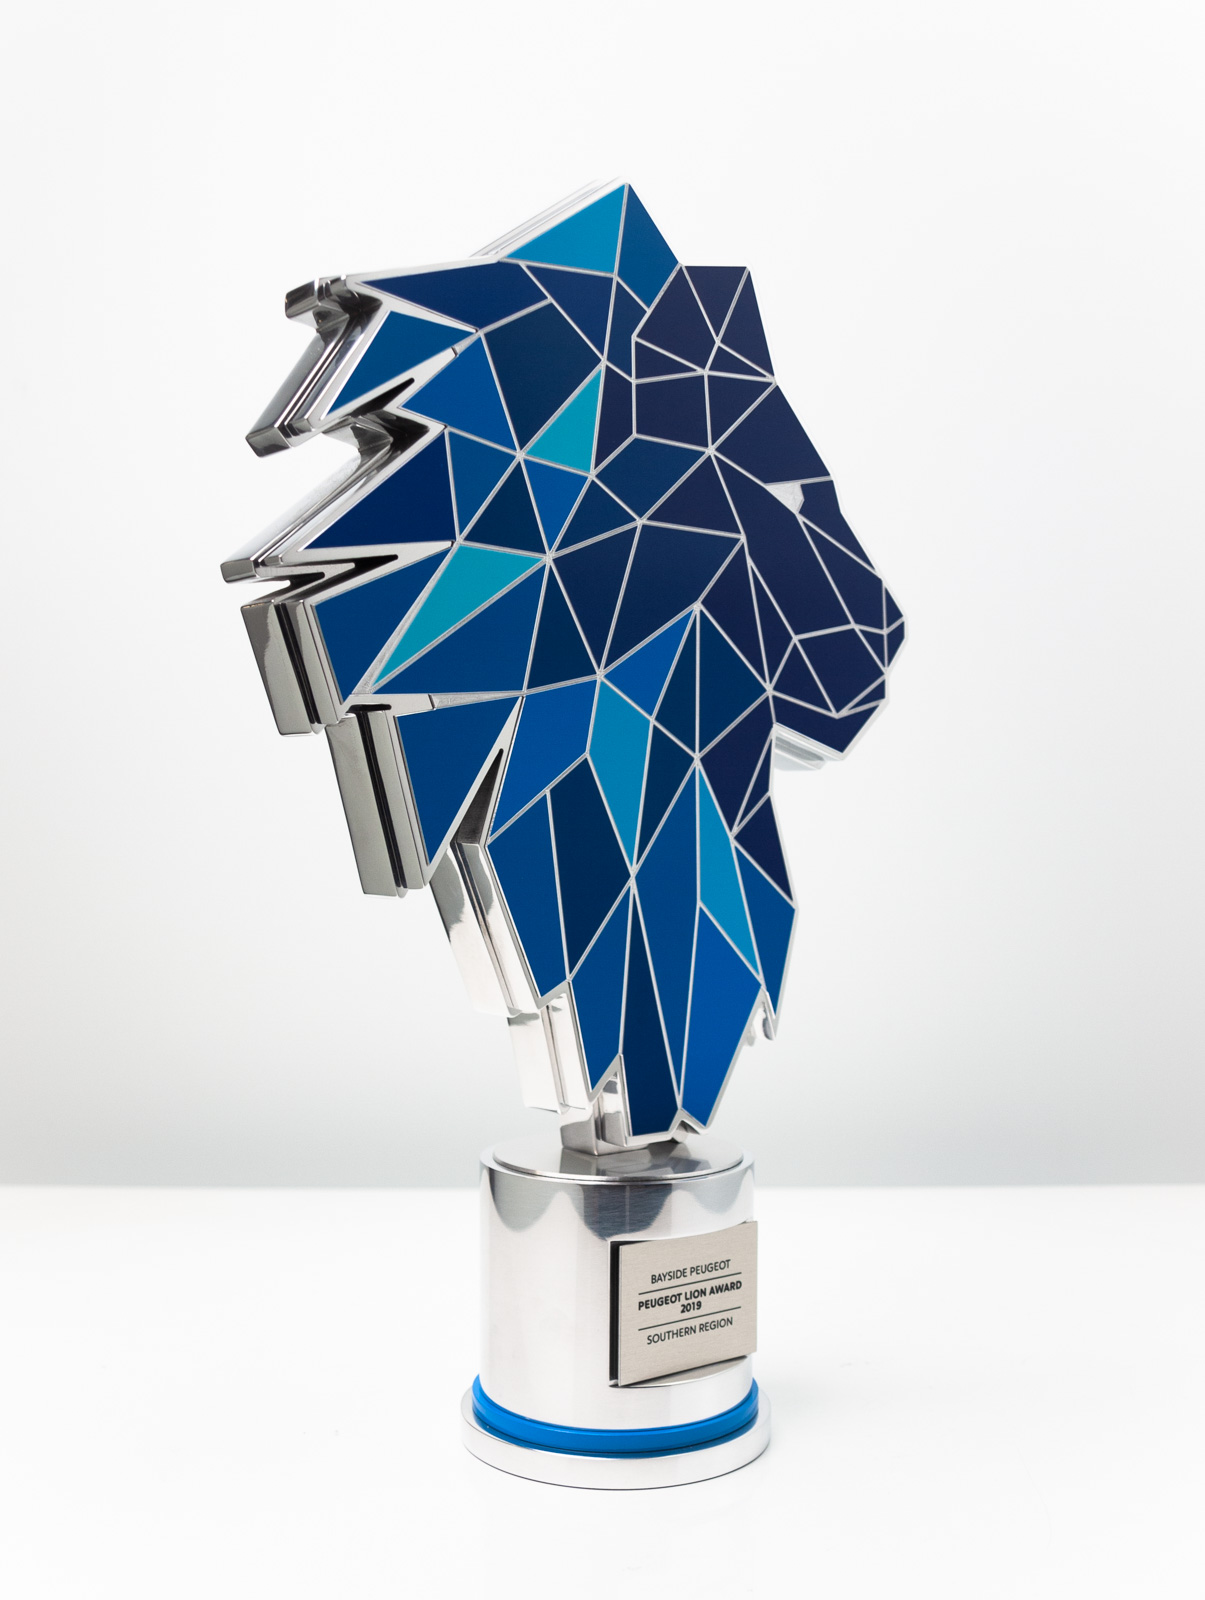 The Peugeot Dealer of the Year Award Trophy